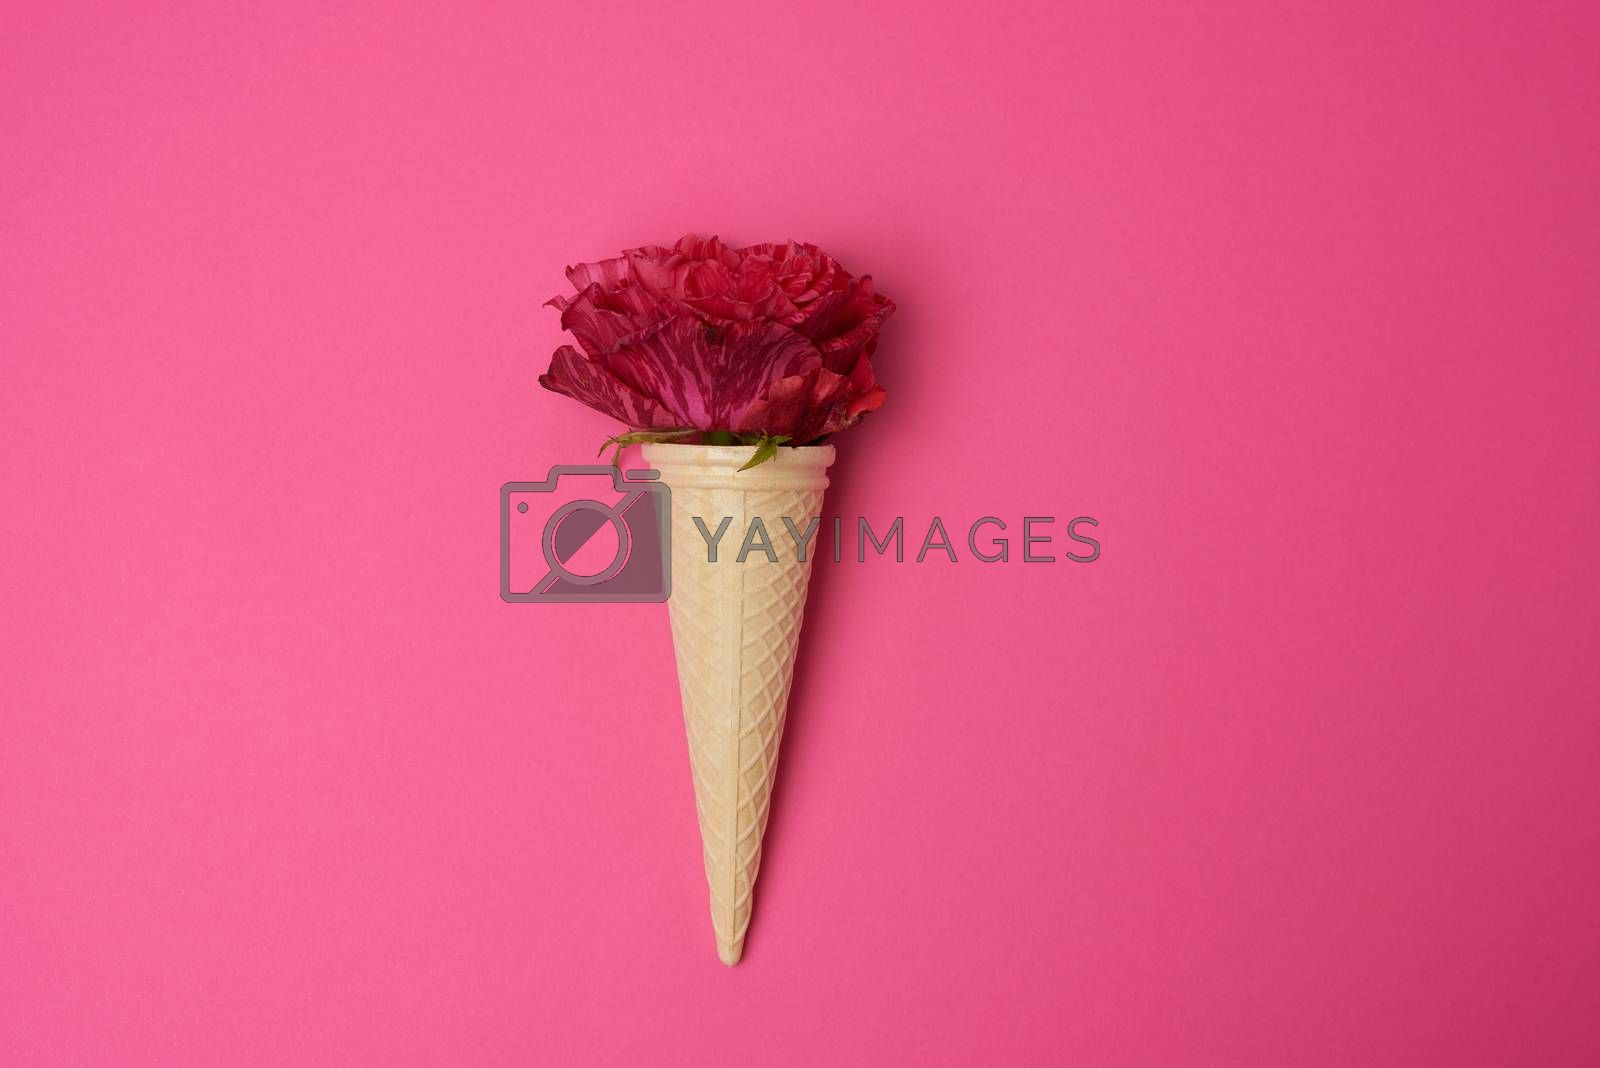 blooming red rose in a waffle cone on a pink background by ndanko